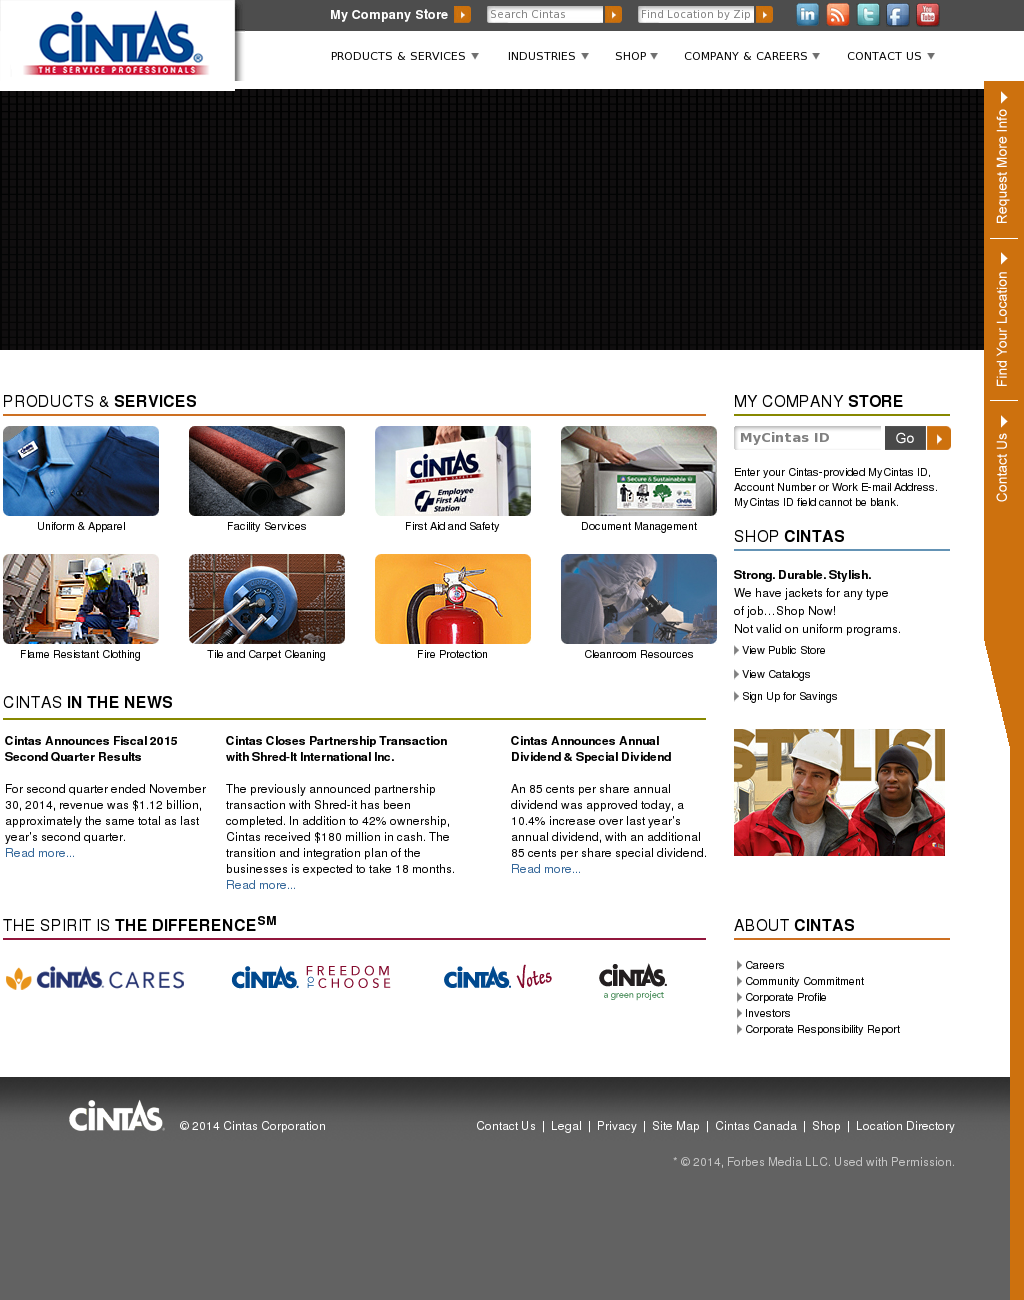 Cintas Competitors, Revenue and Employees - Owler Company Profile